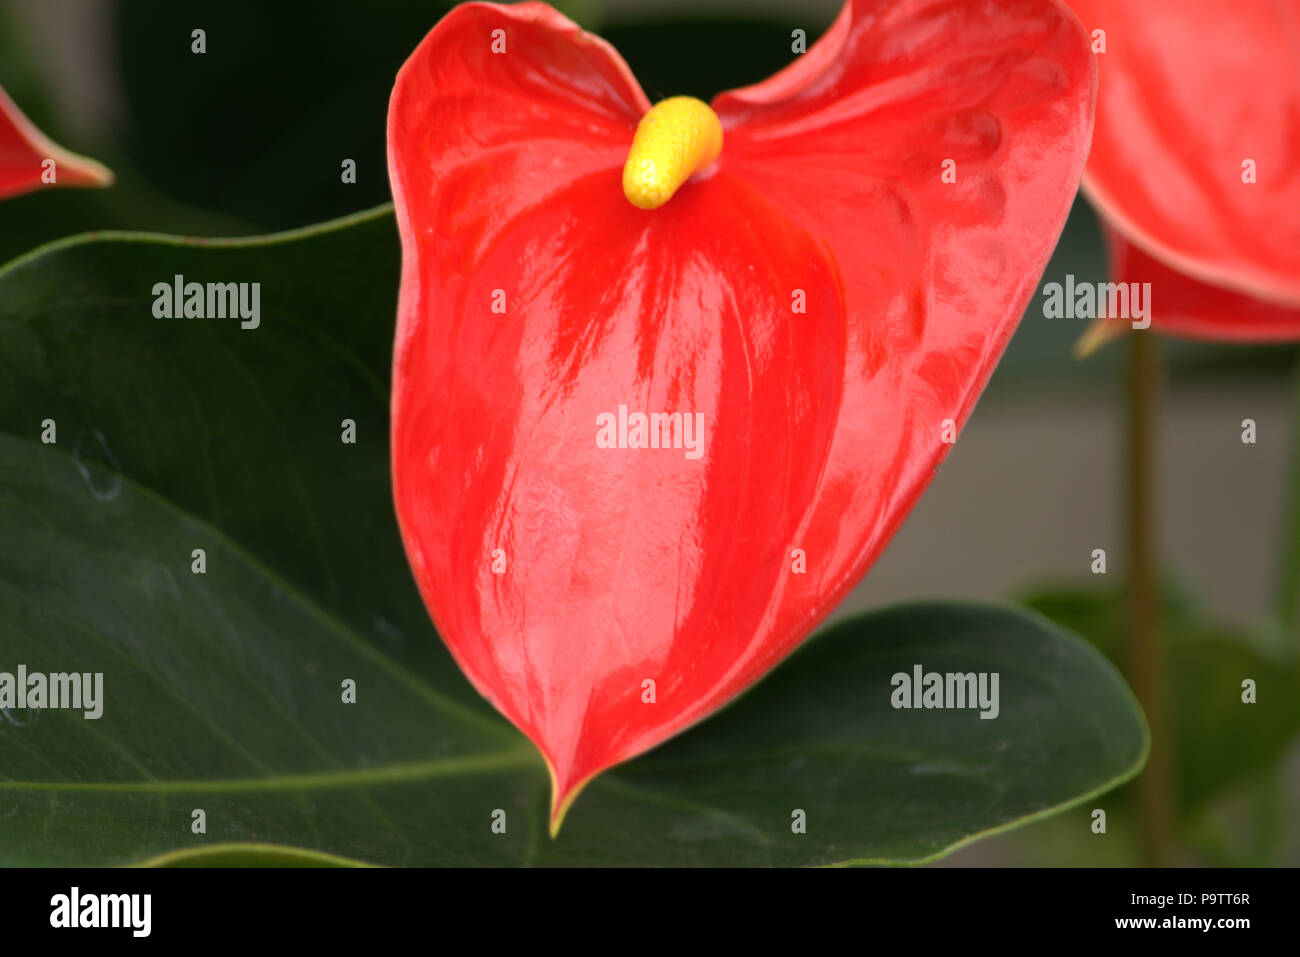 Red peace lily stock photos red peace lily stock images alamy red and yellow peace lily flamingo flower stock image izmirmasajfo